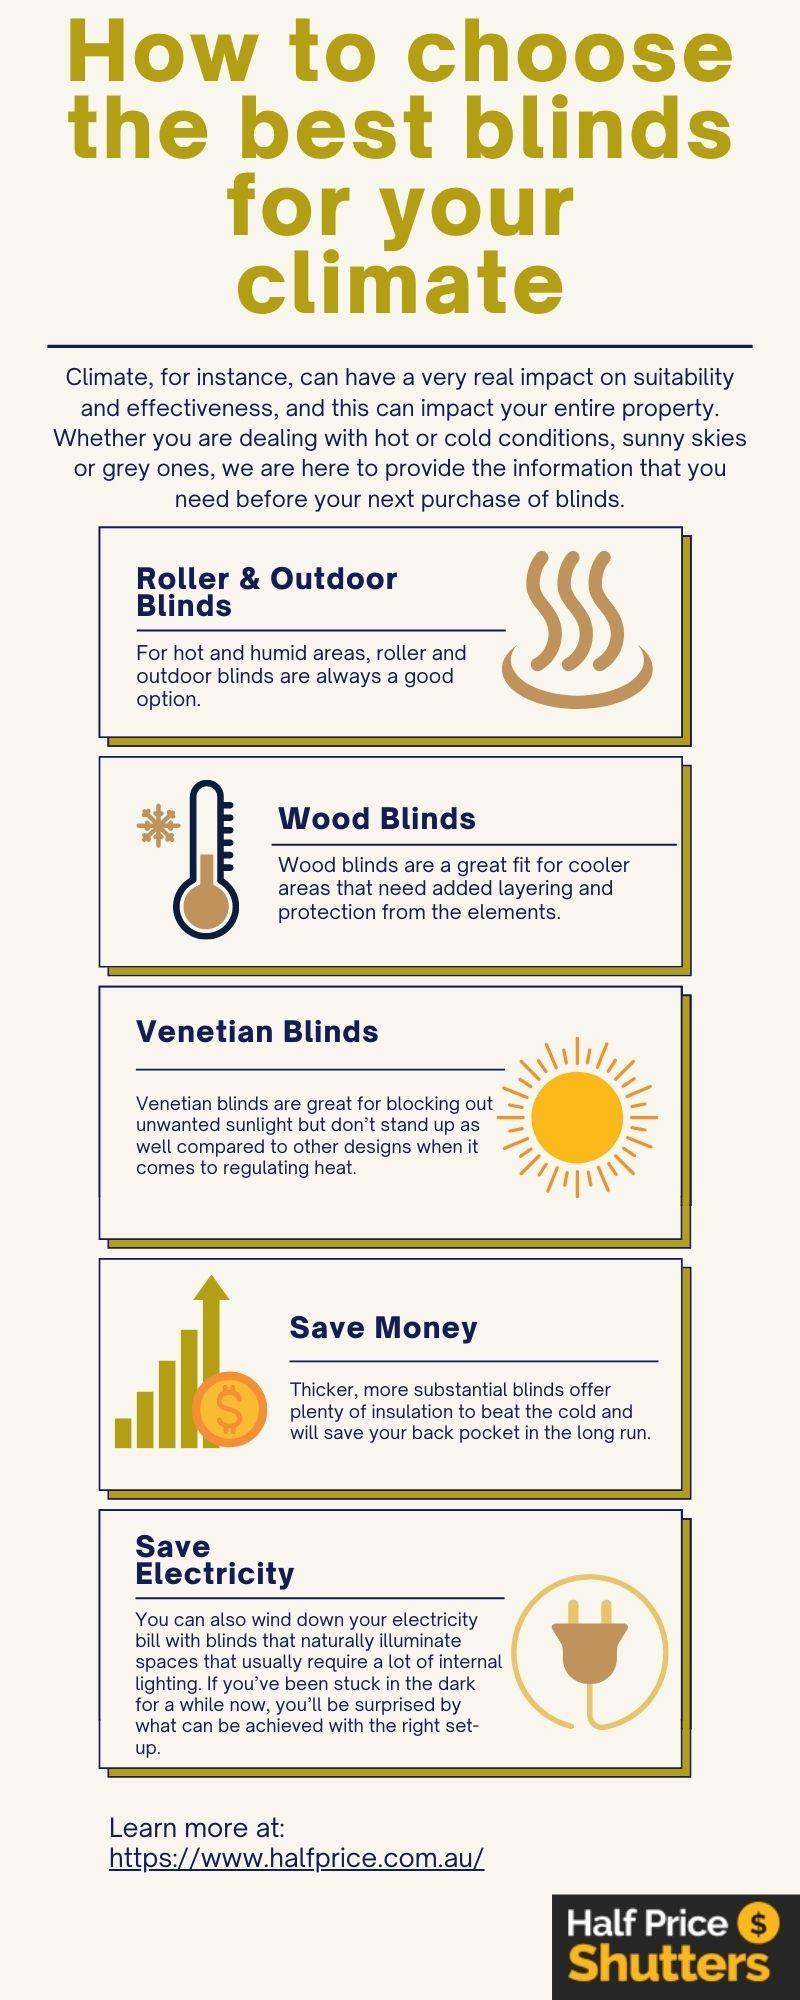 How to choose the best blinds for your climate